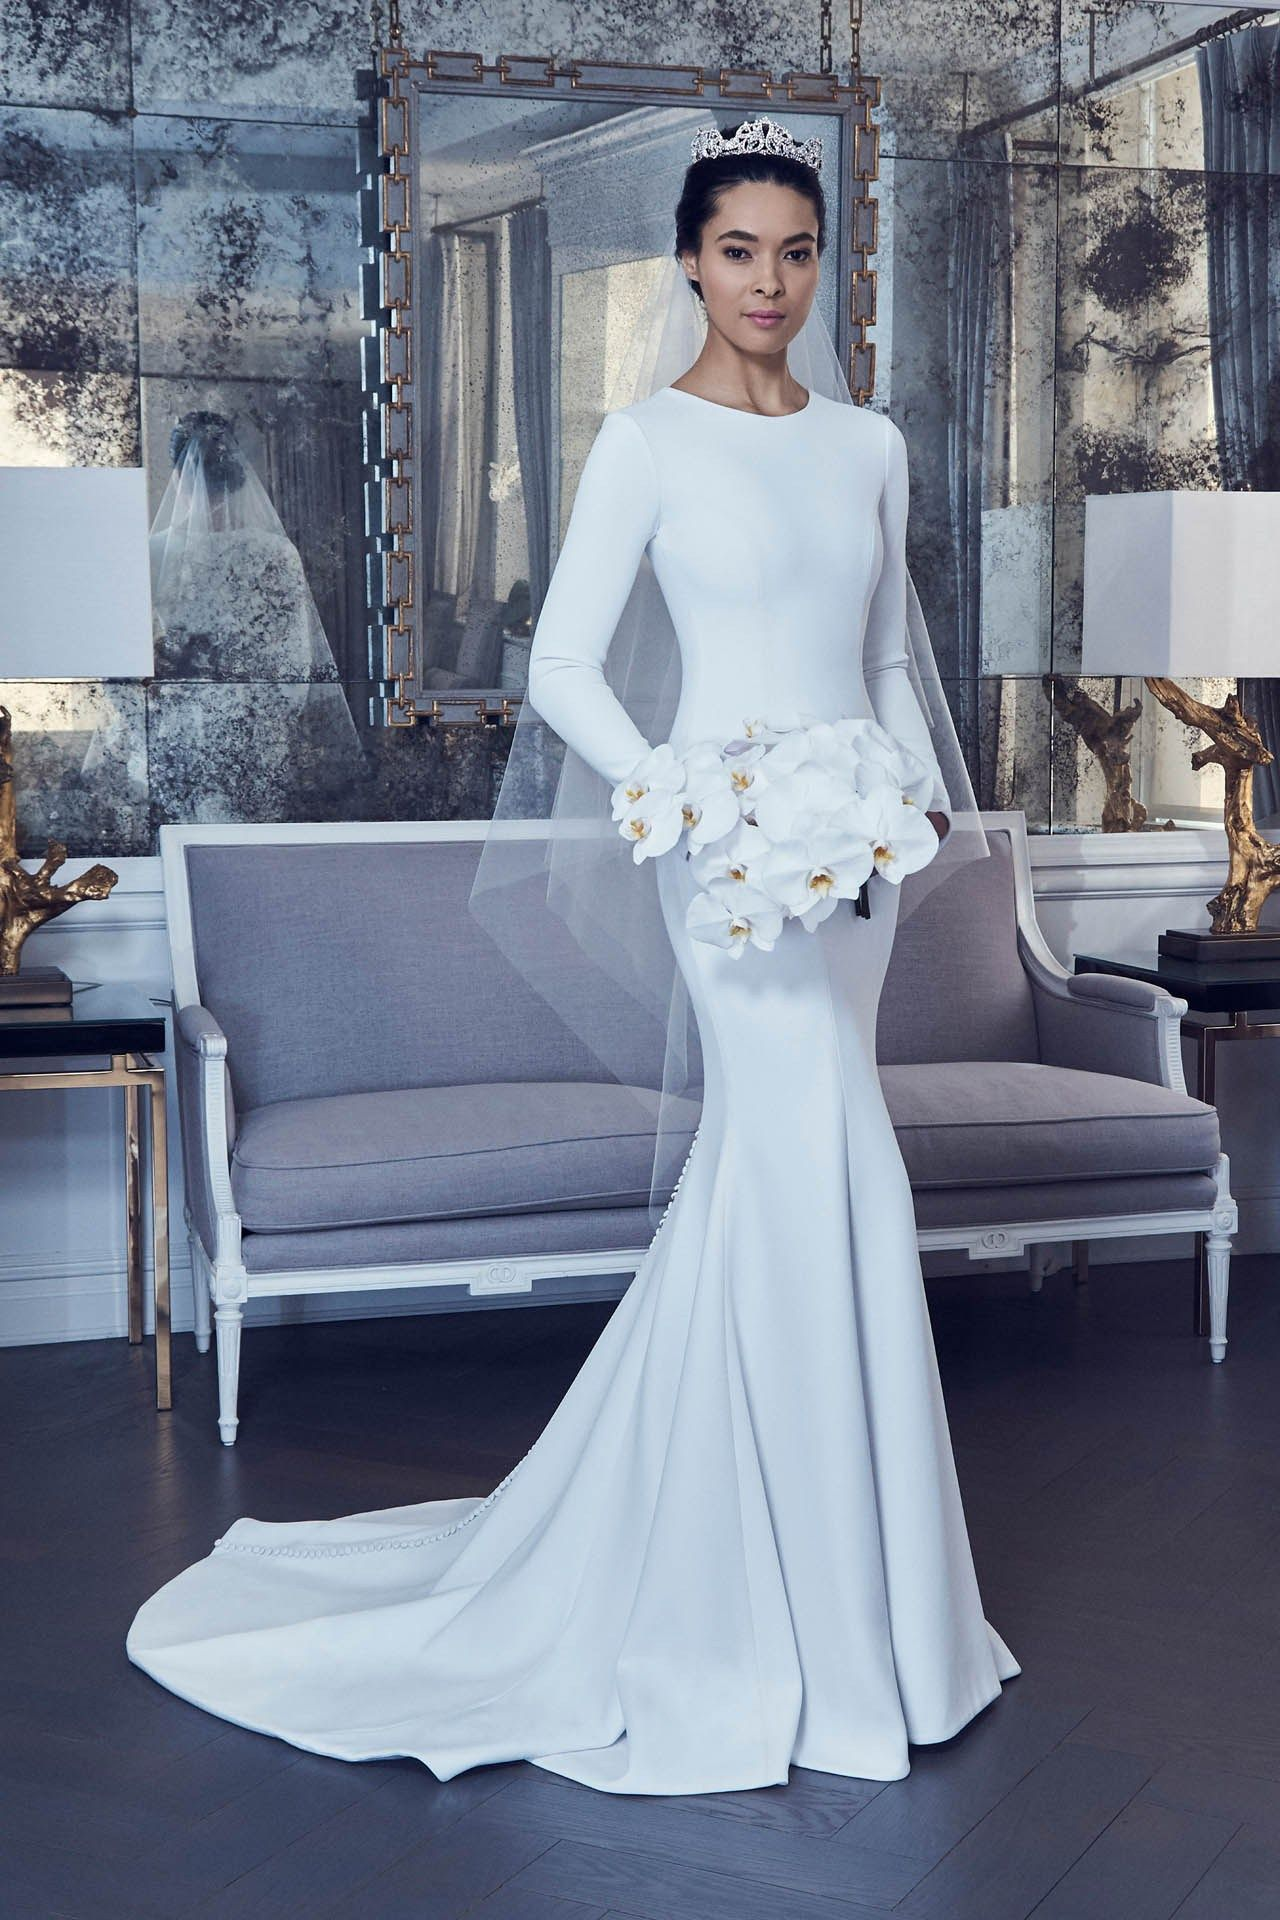 0dbc1908ced Long sleeve white mermaid wedding dress by Romona Keveža Collection Bridal   mermaidcut  fishtail  RomonaKevežaCollection  2019